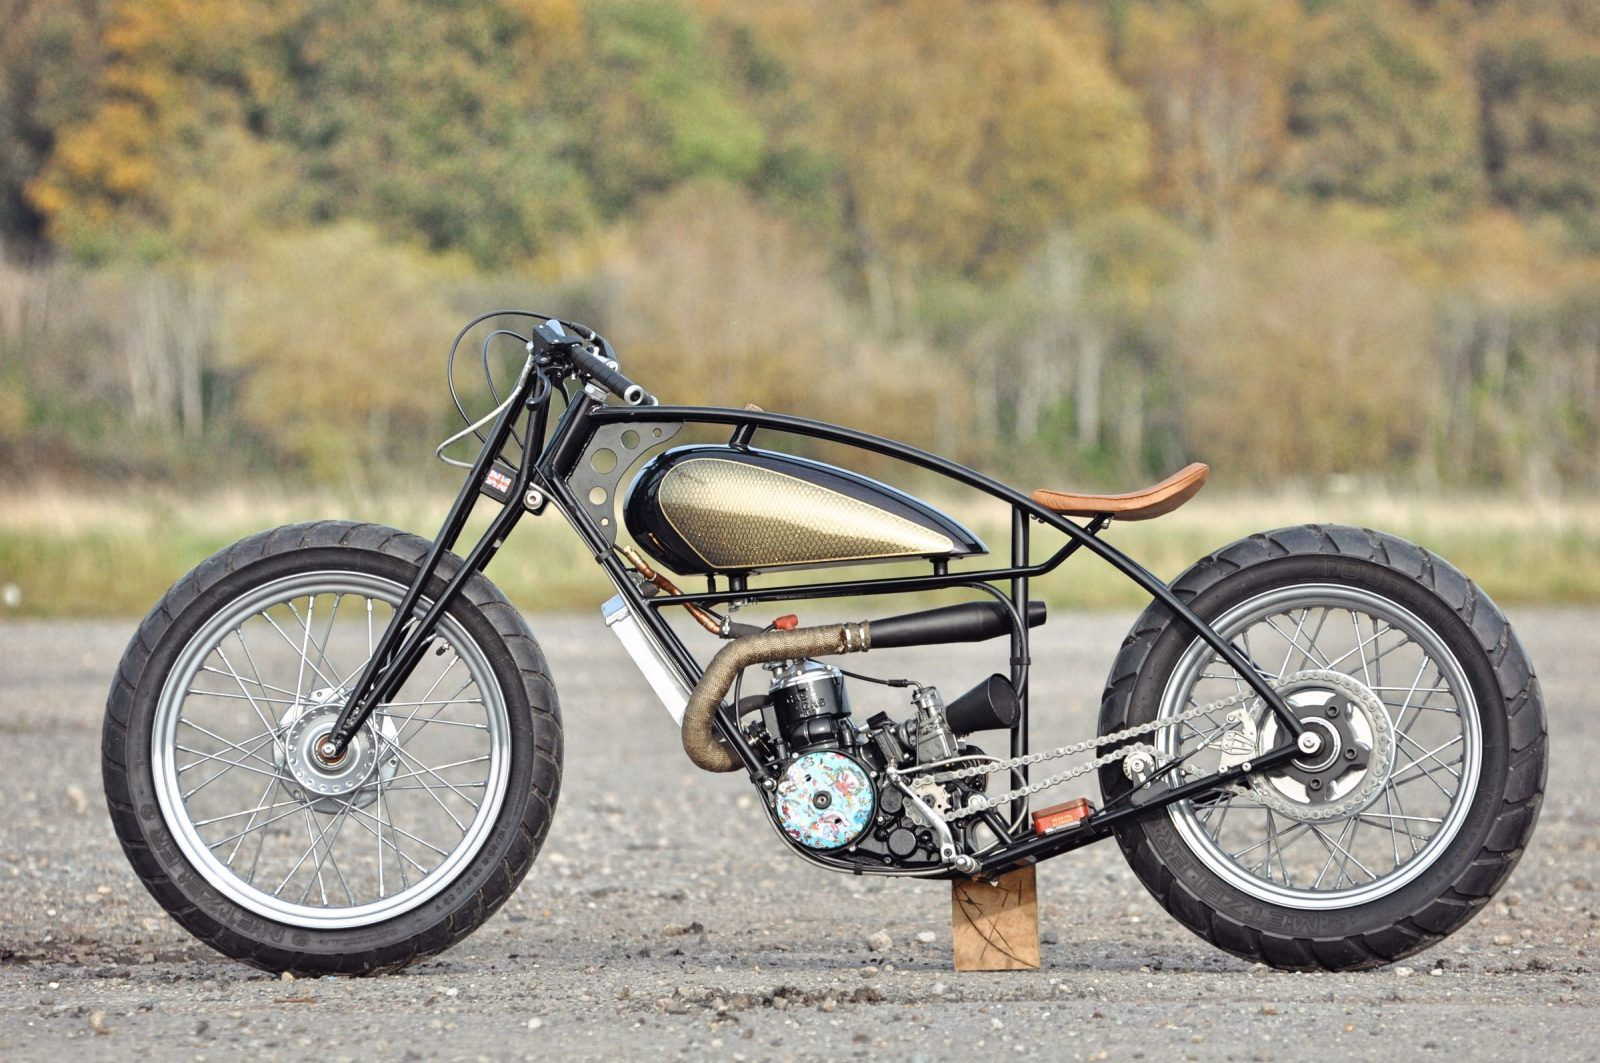 Valespeed Motorcycles 28 Days Later Custom Gasgas Motorcycle